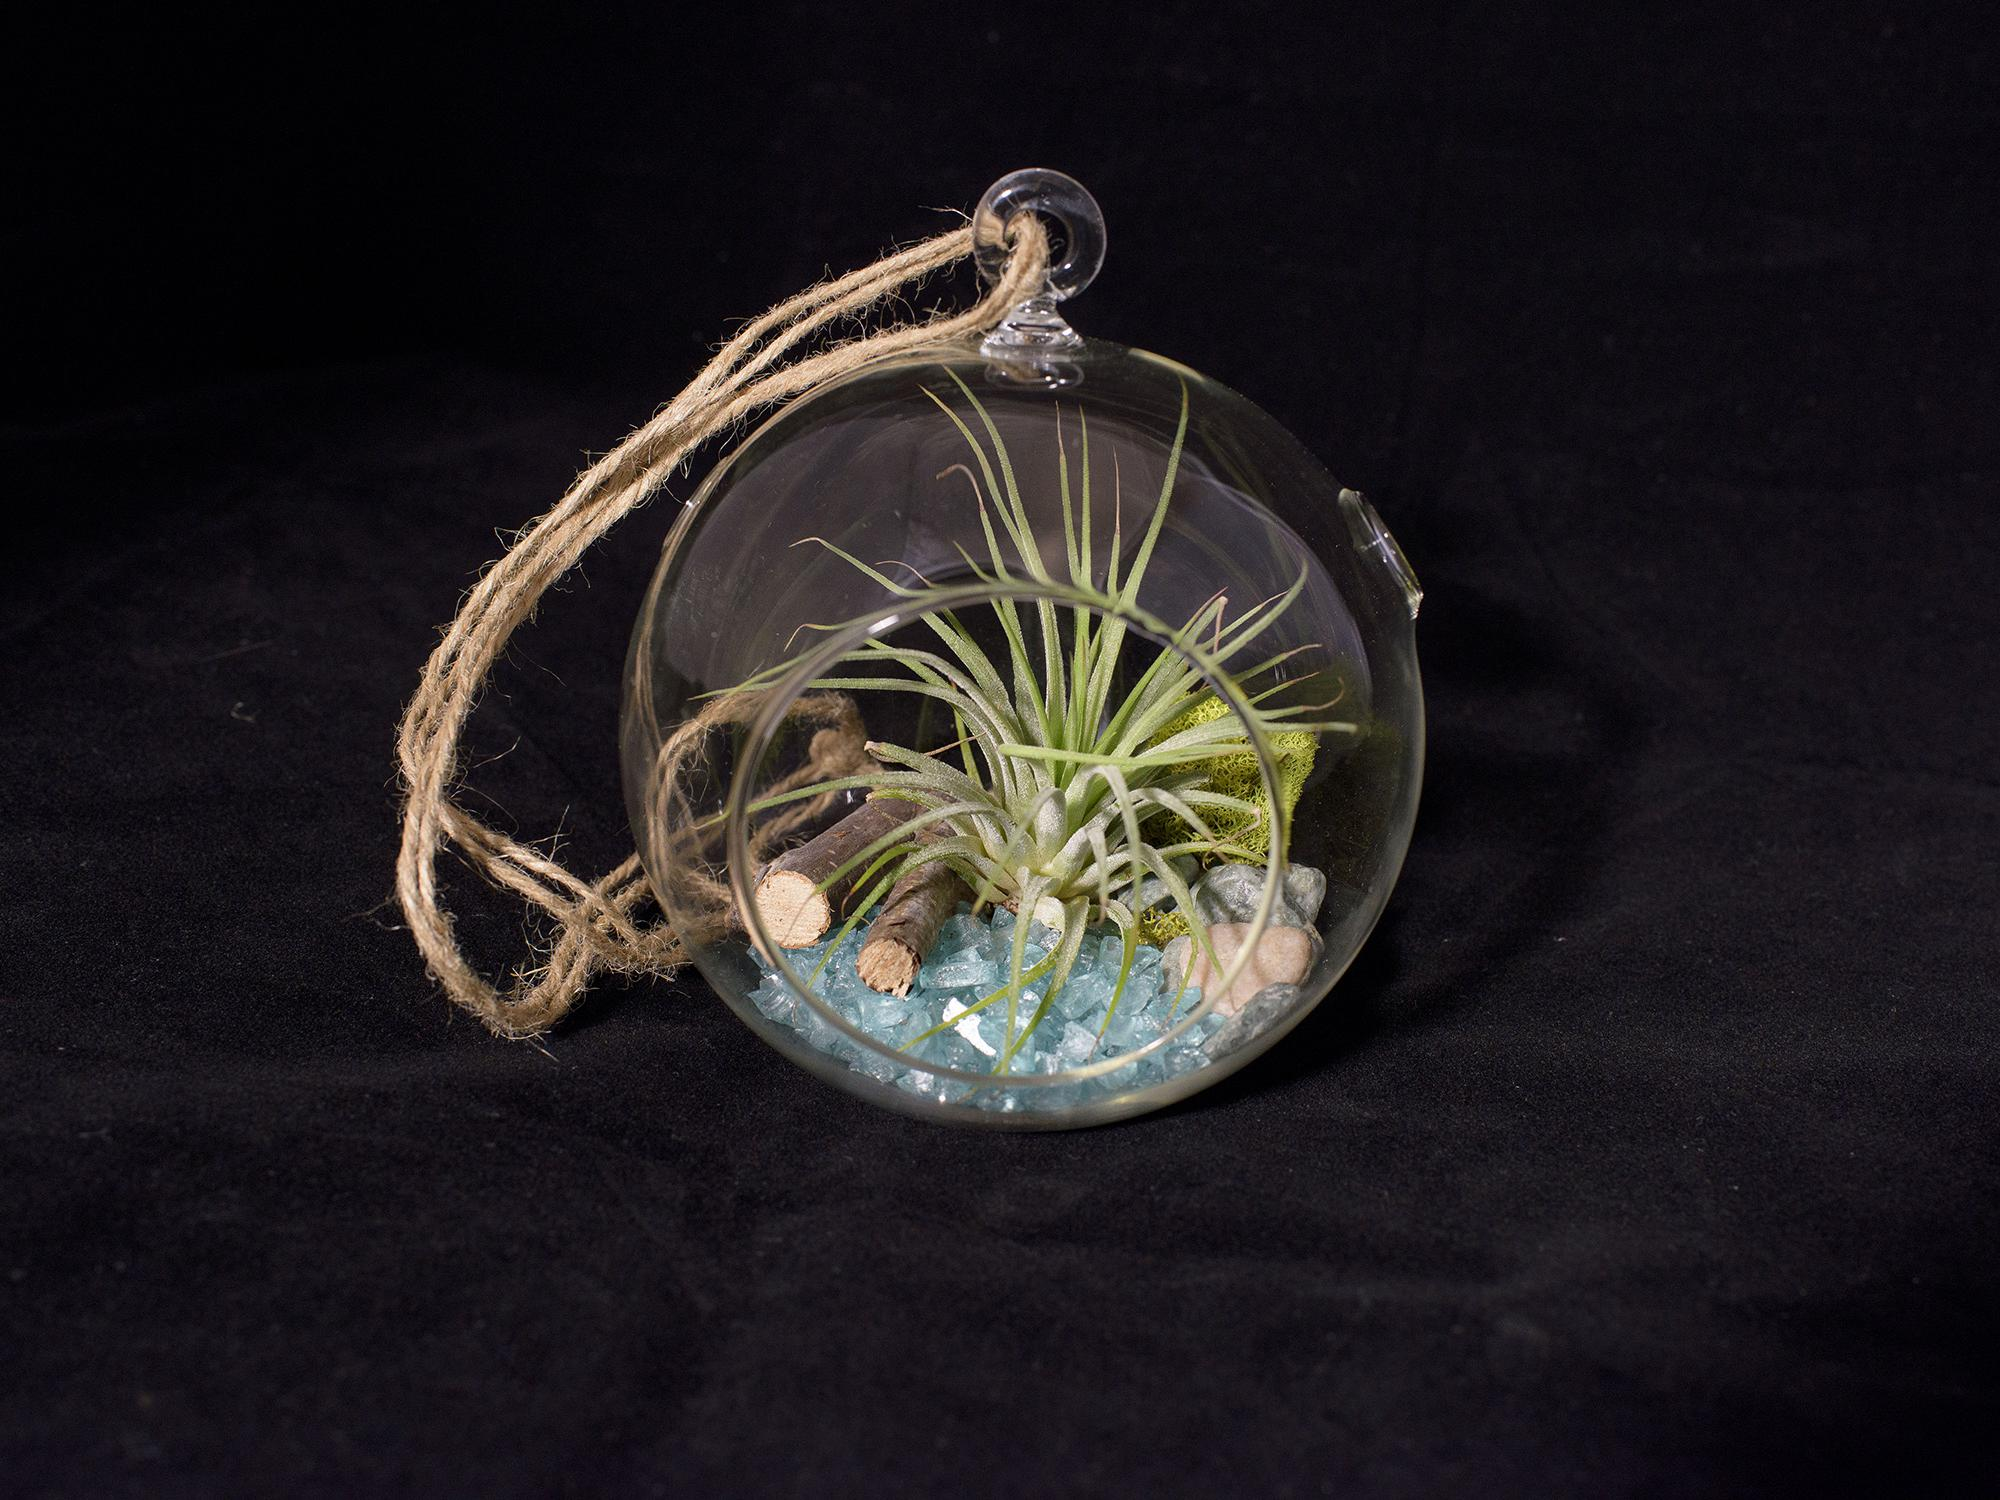 An air plant terrarium is a hollow, vented glass container with decorative sand and pebbles, twigs or driftwood, moss, and a dusty green tillandsia plant, also called an air plant.